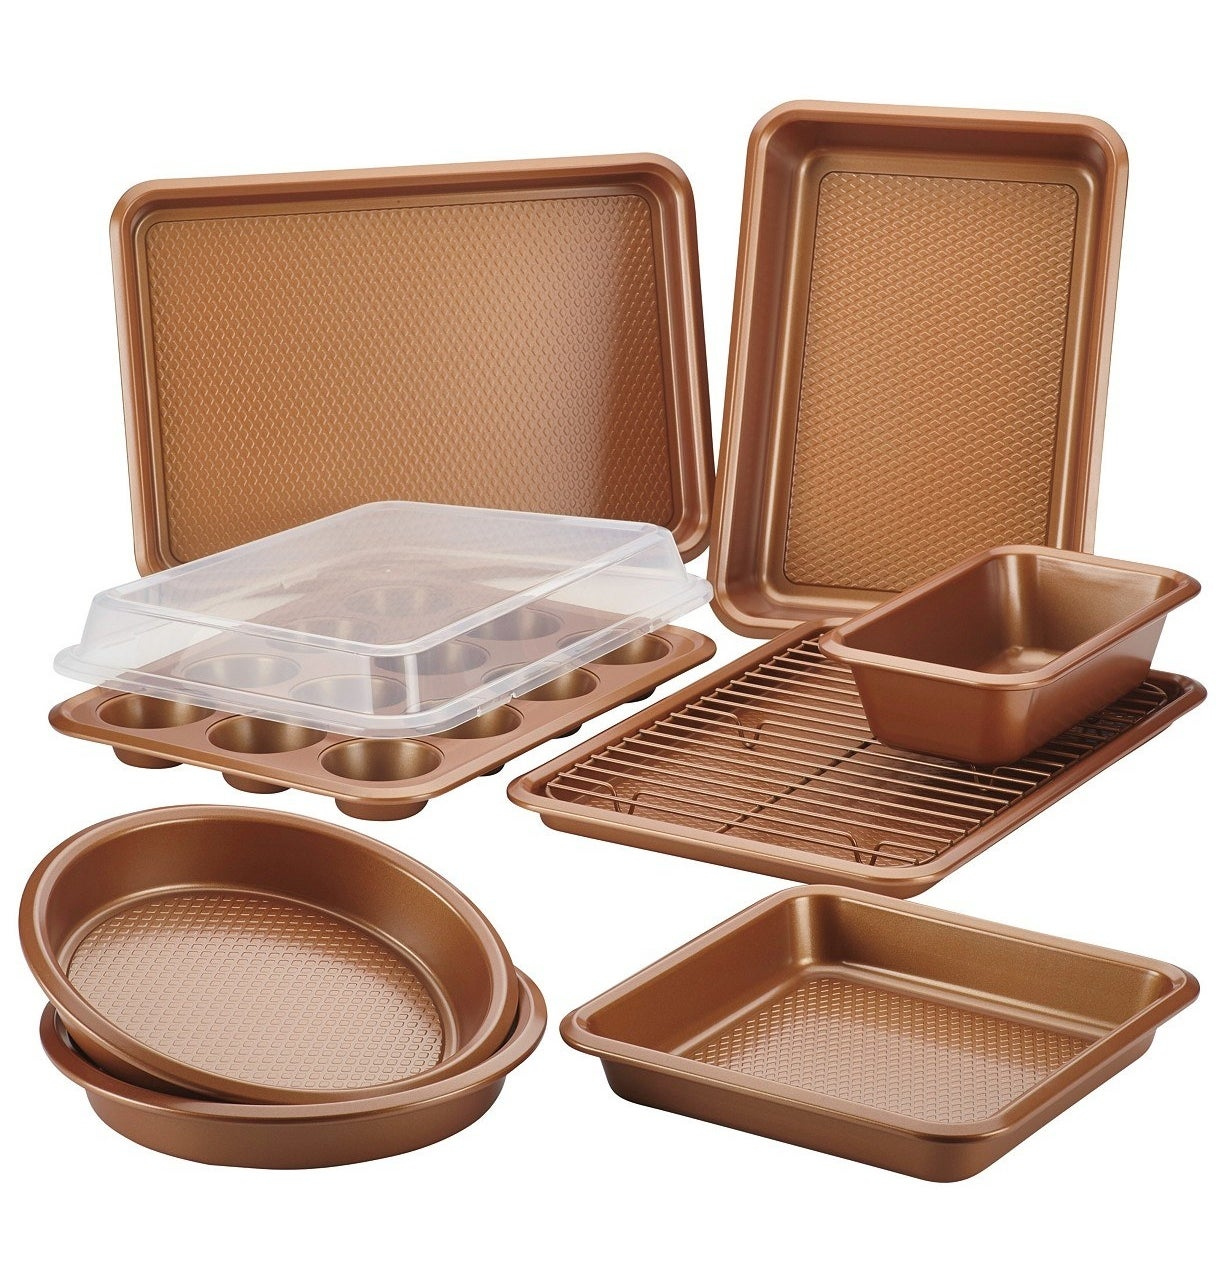 the full Ayesha Curry 10 piece bakeware set